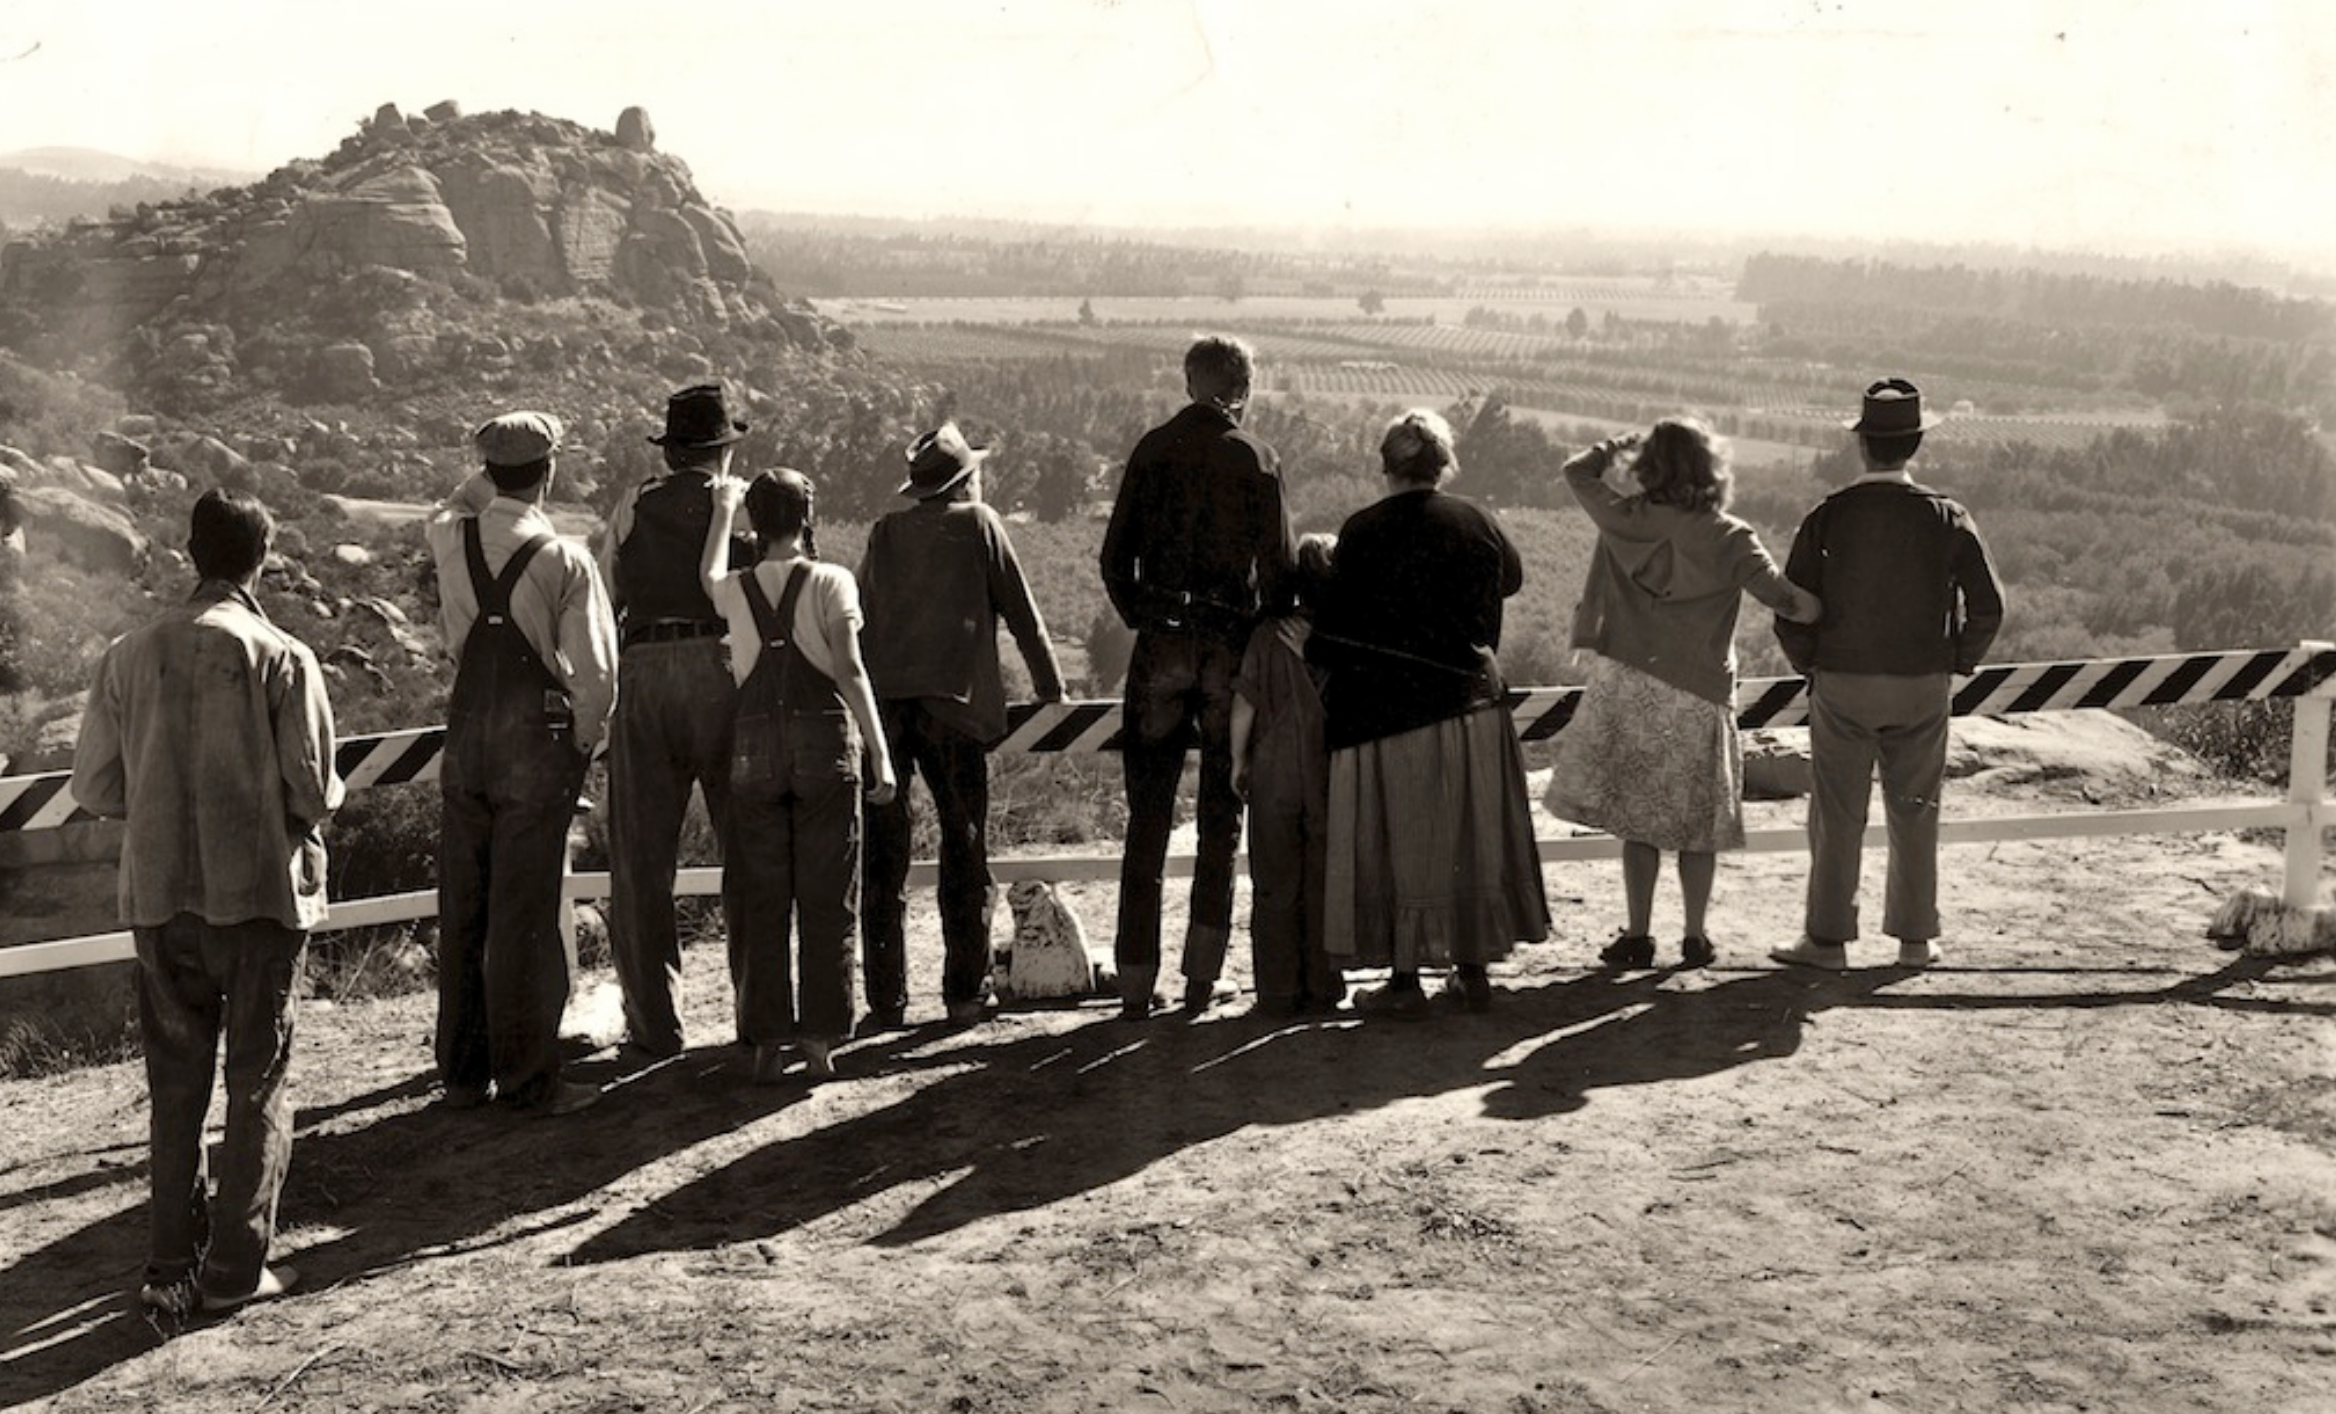 The 1940 film rendition of The Grapes of Wrath portrays the displaced Joad Family and their first glance at California.